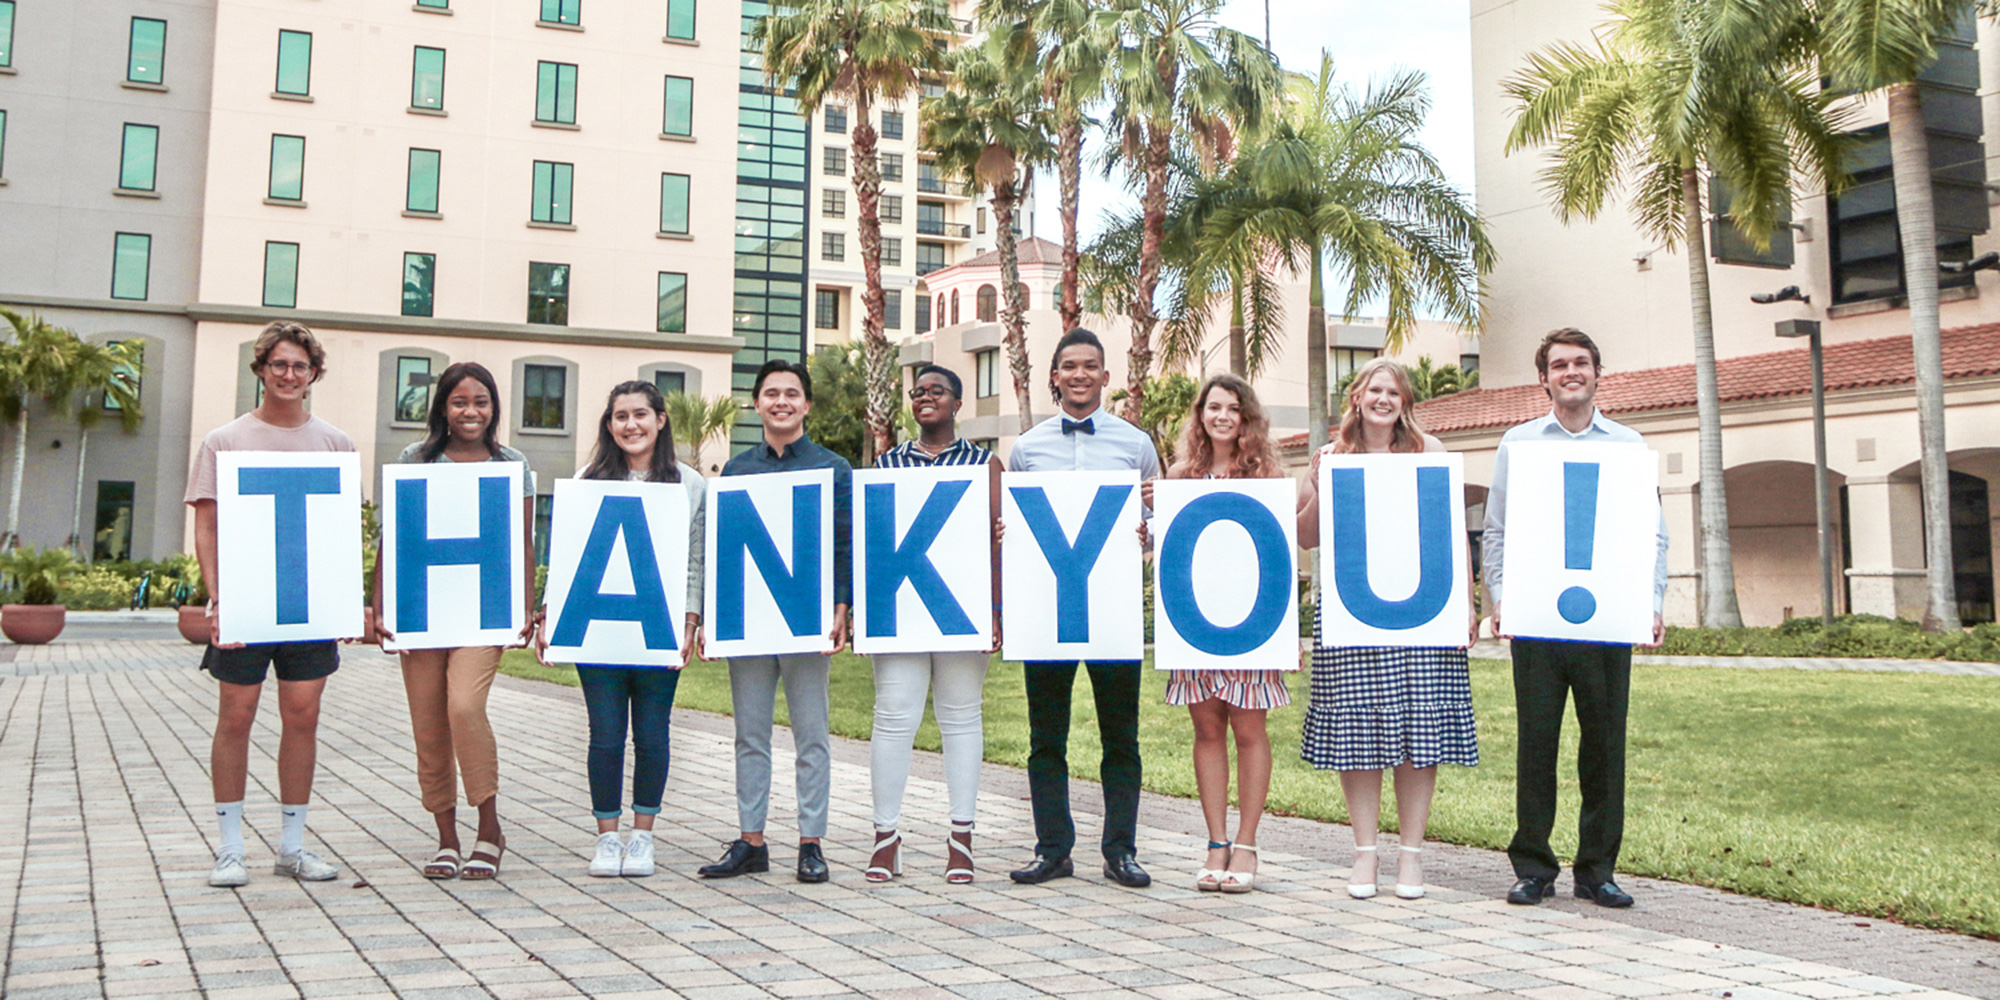 PBA students holding thank you sign